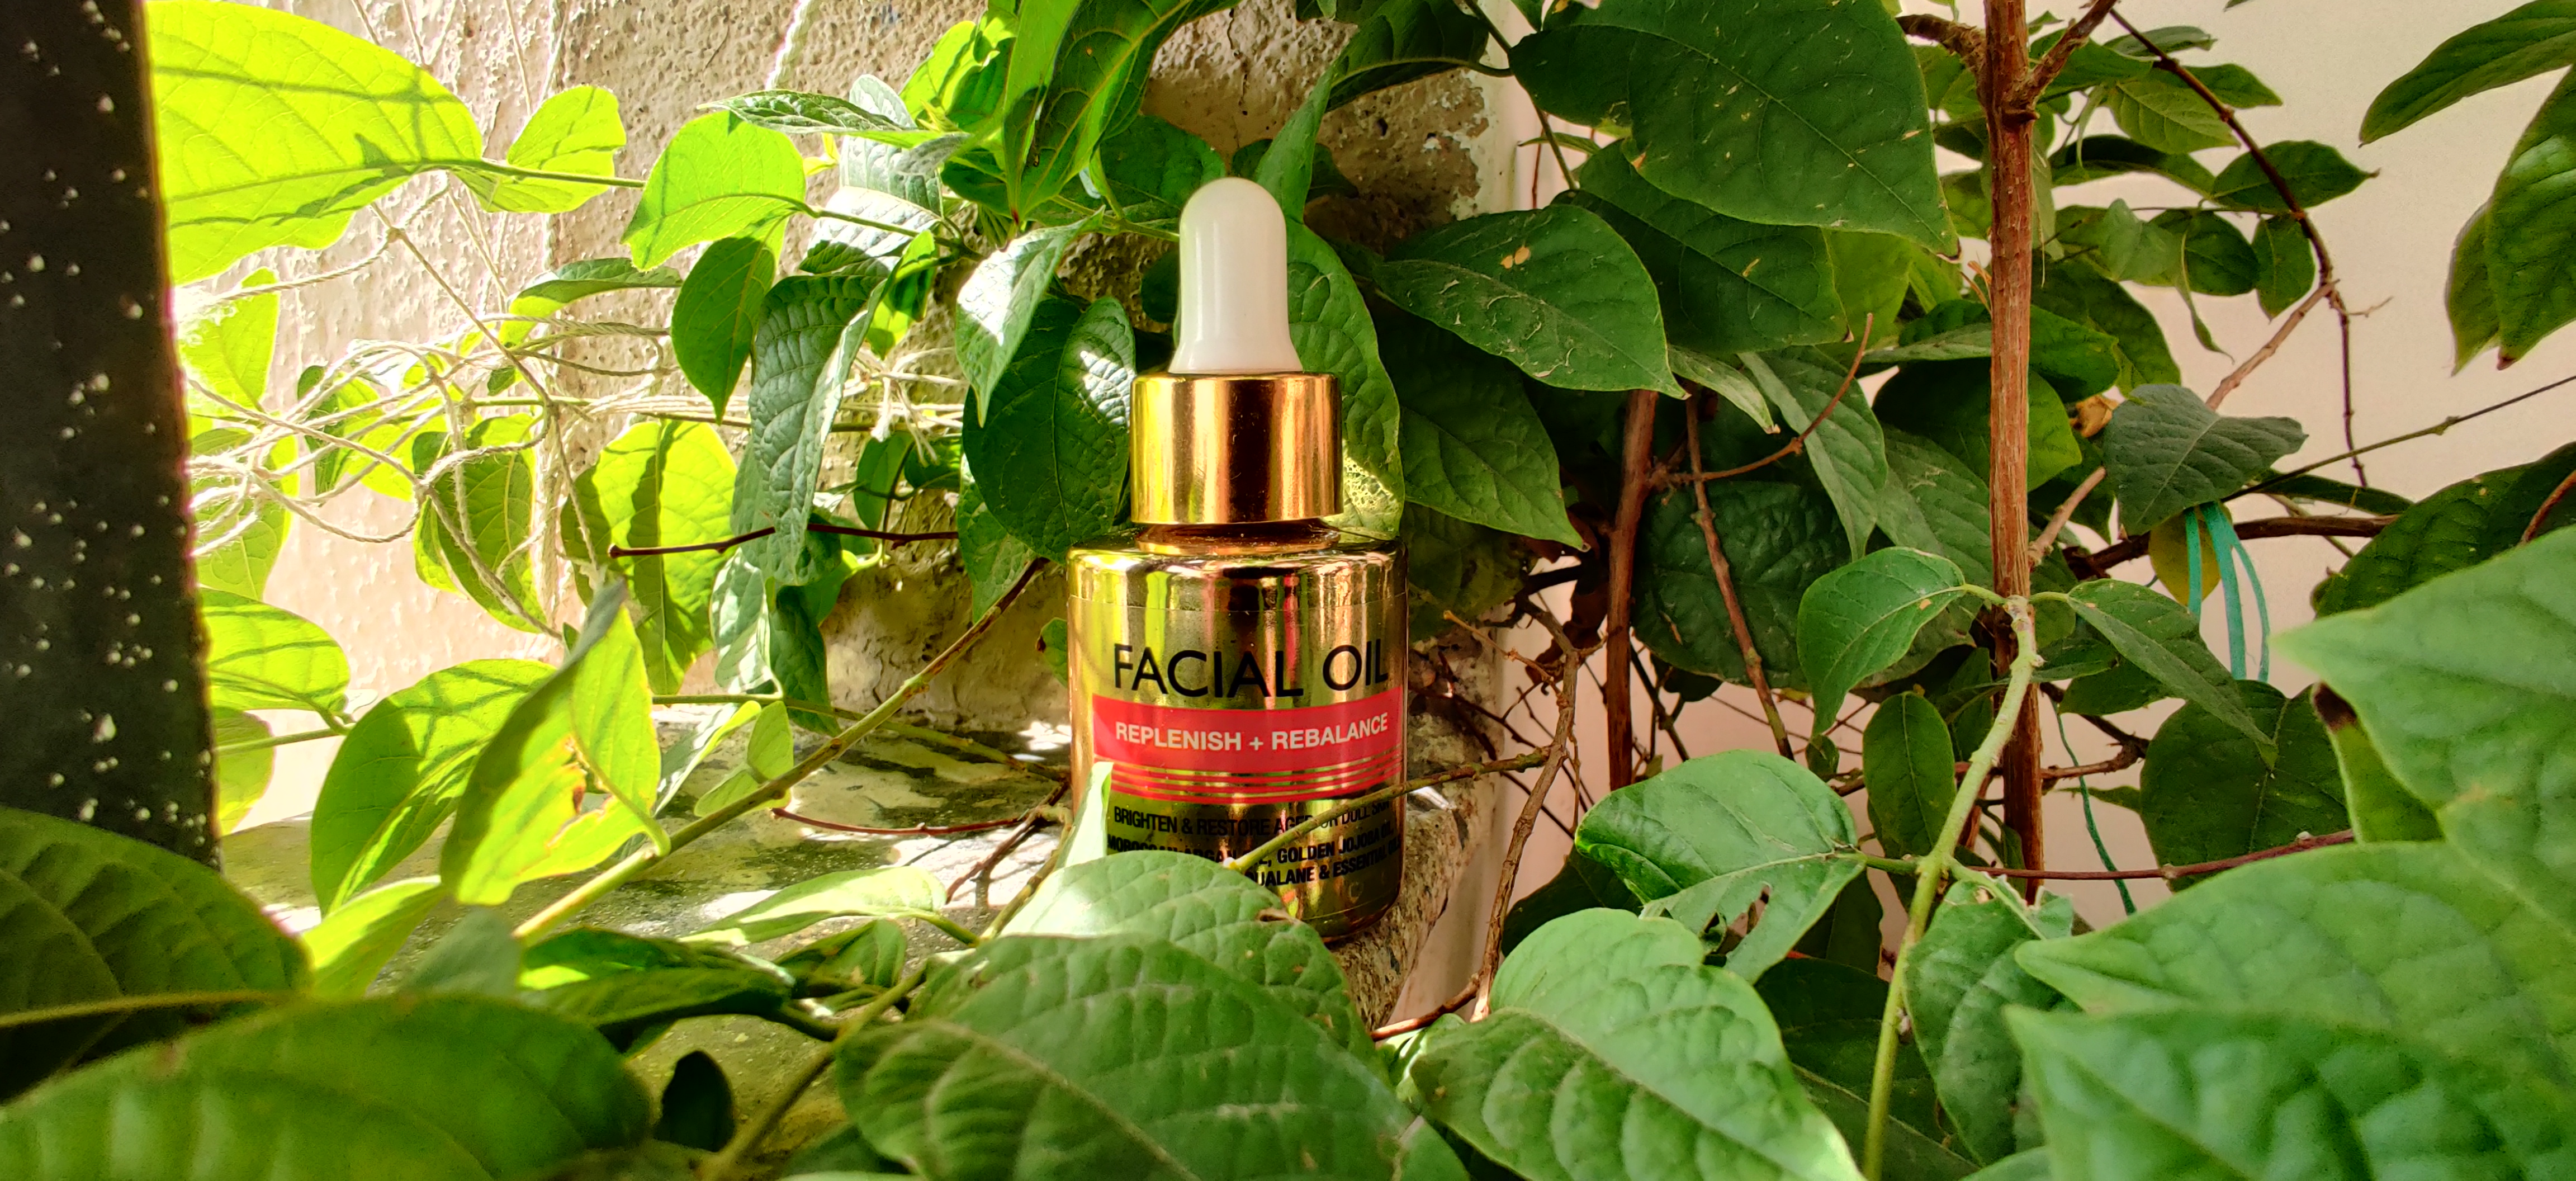 StBotanica Pure Radiance Facial Oil-Needed this from so long-By meghanka_parihar